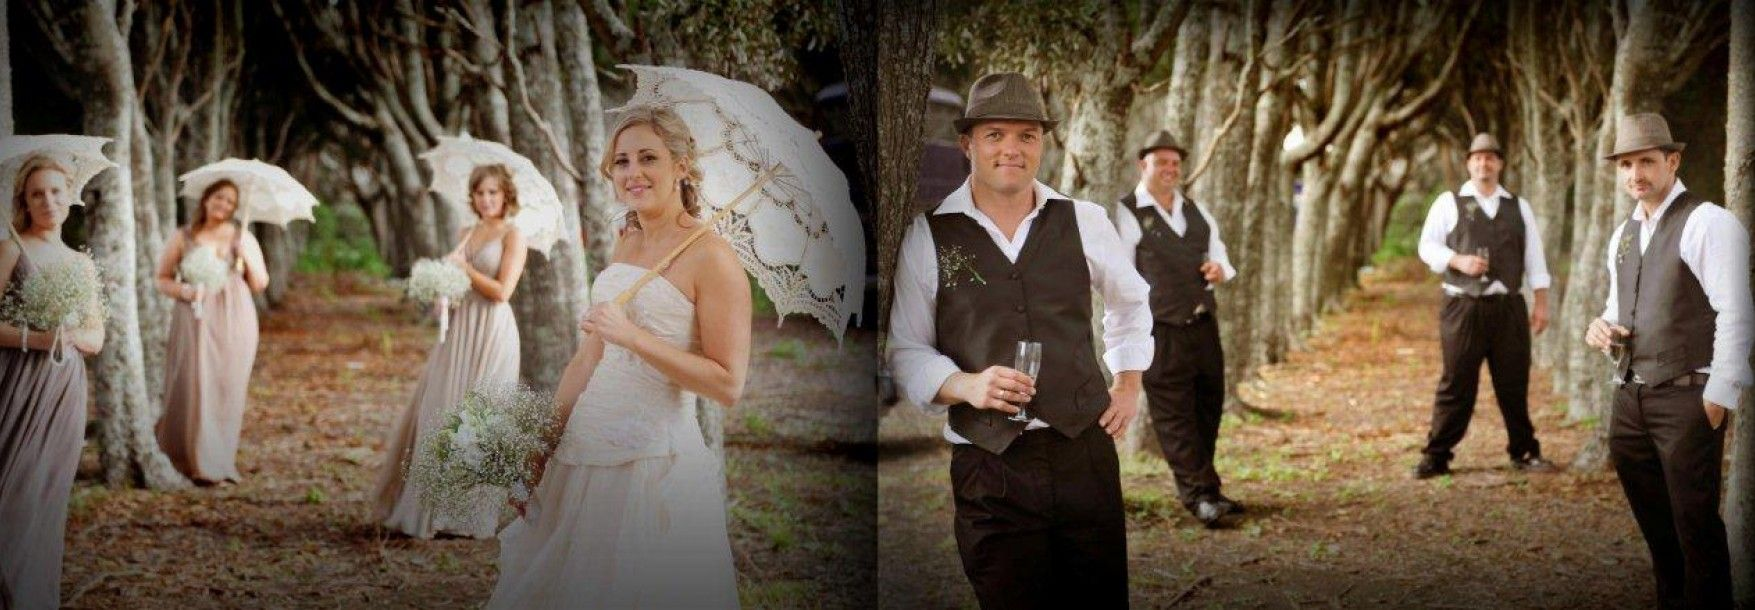 Auckland Wedding Venue Markovina Vineyard Estate An Outstanding Offering Expansive Gardens And Pond Features With Multiple Locations To Choose From